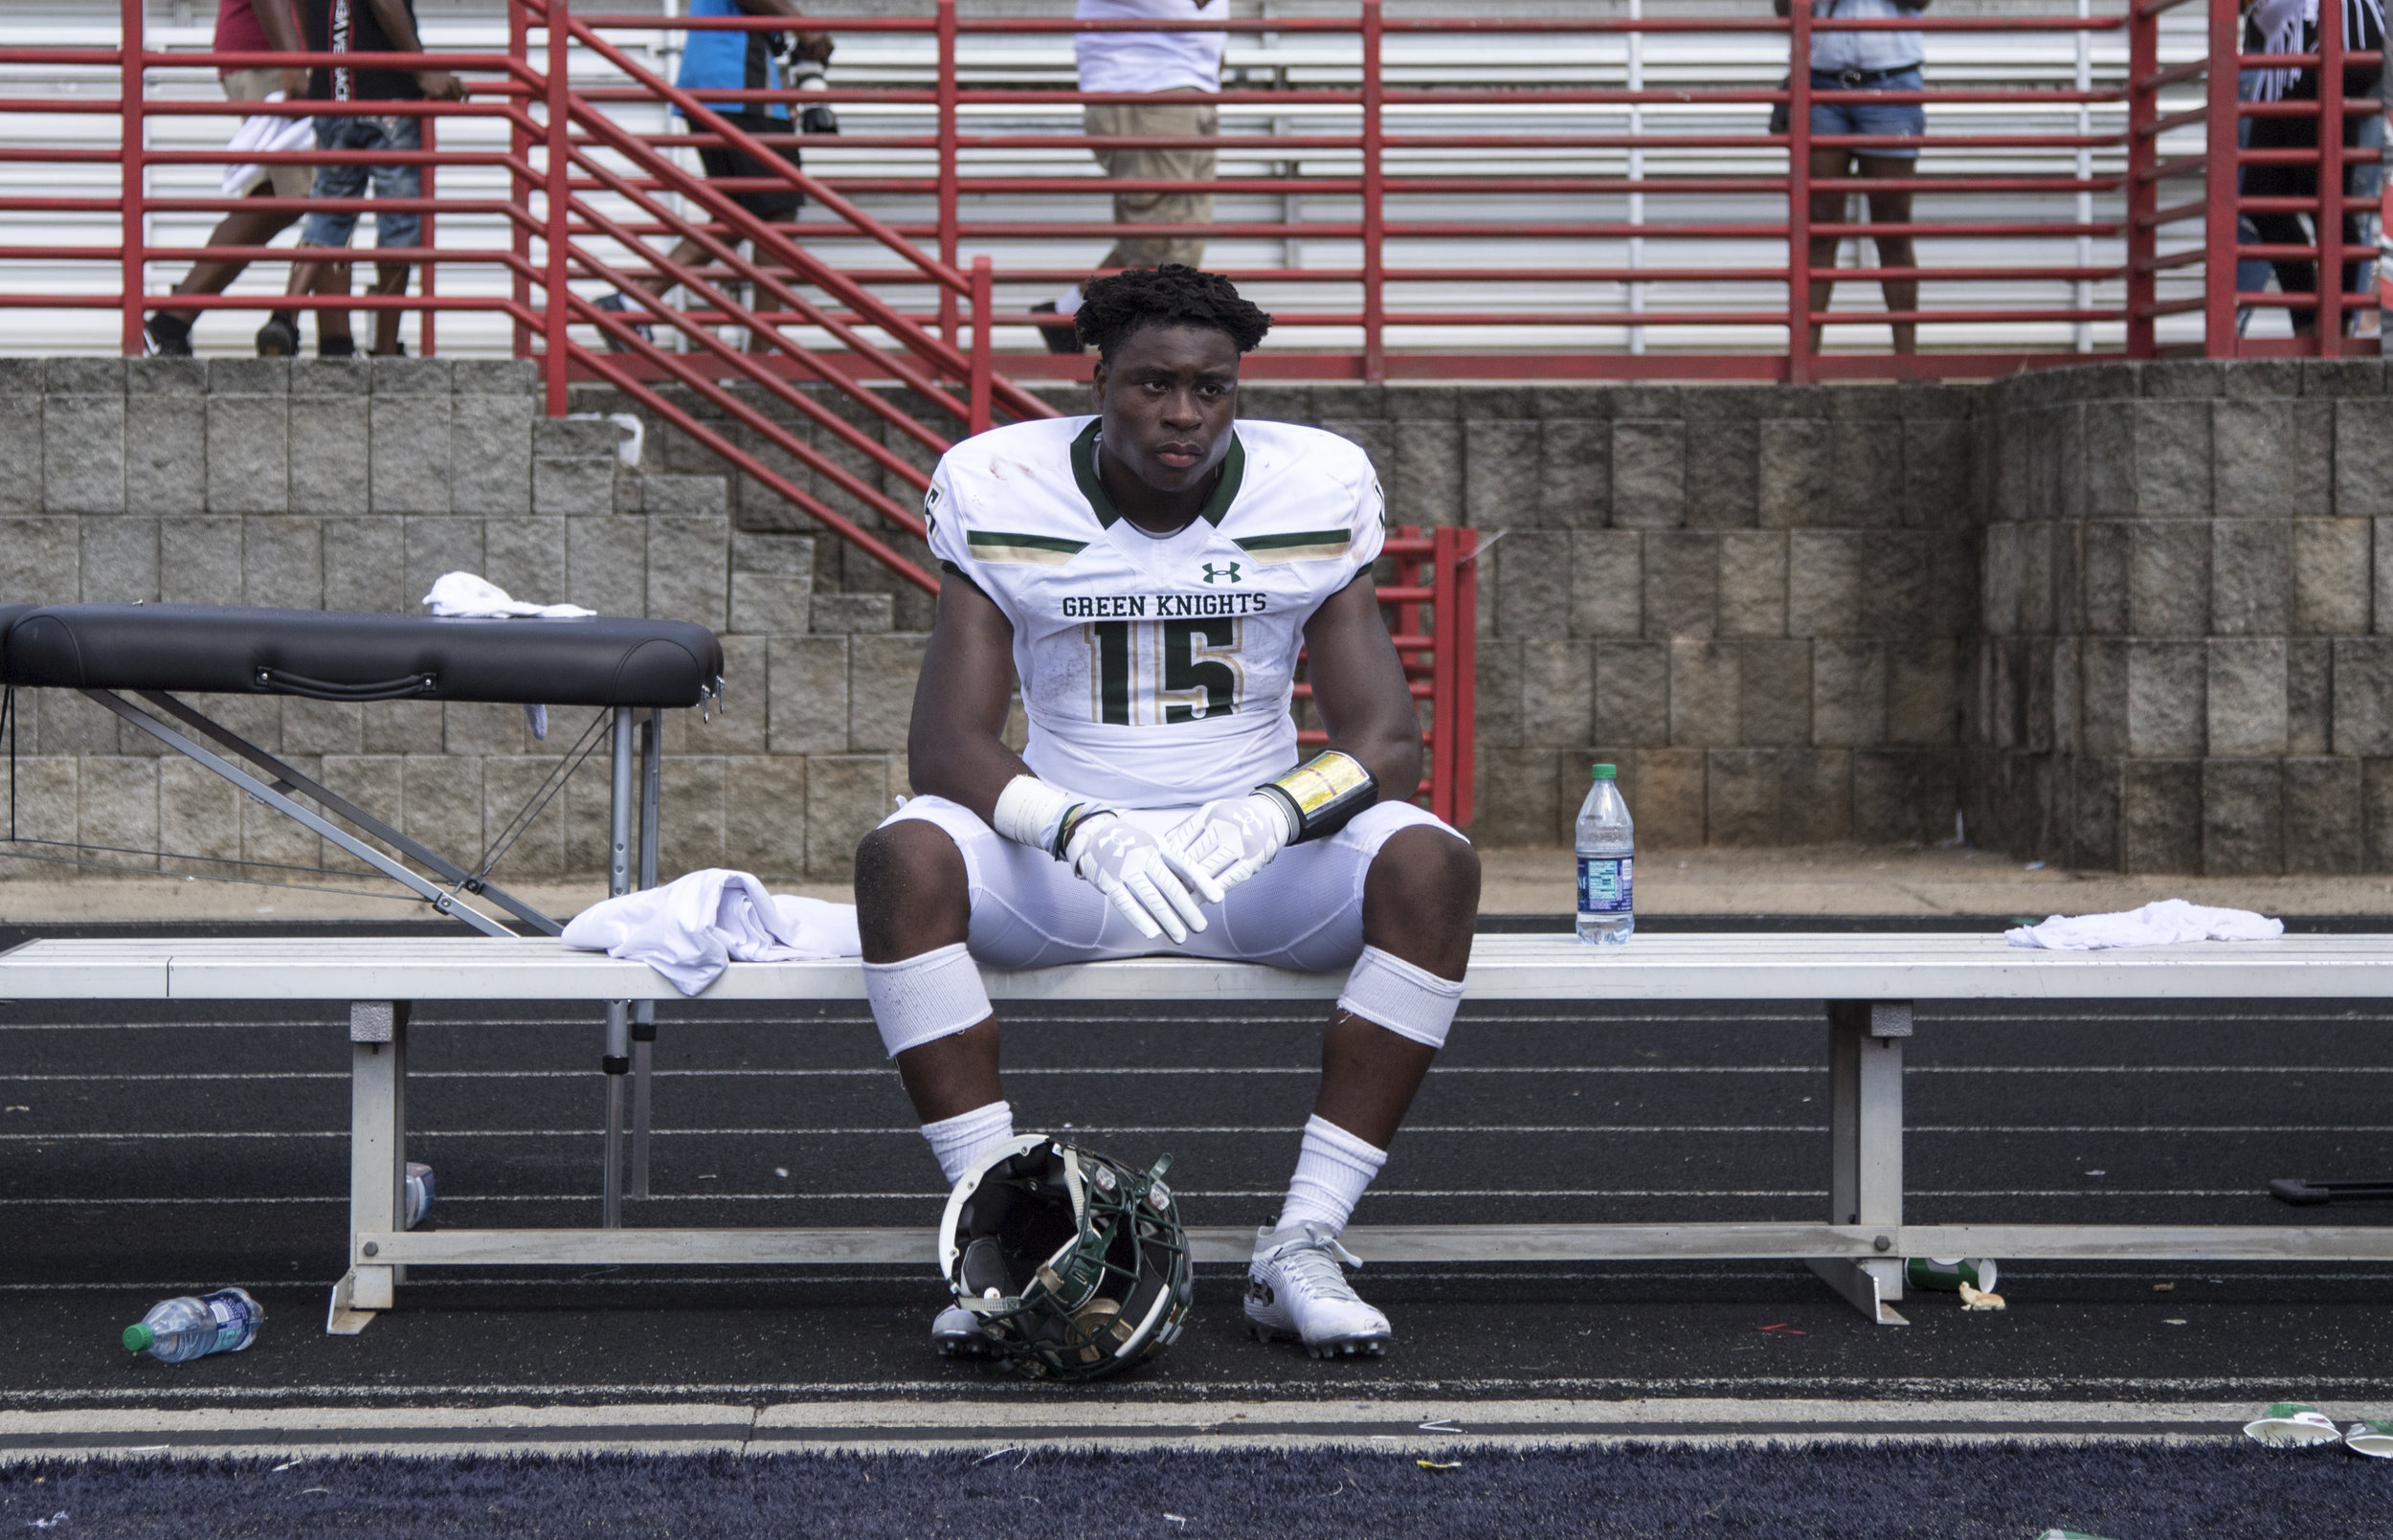 Audric Estime (15) of St. Joseph Regional sits on the bench after the end of the second half of the football game between the St. Joseph Regional Green Knights and the American Heritage Patriots during the Liberty Bowl at Milton High School in Milton, GA on Saturday, September 1, 2018. The Green Knights fell to the Patriots 17-20.